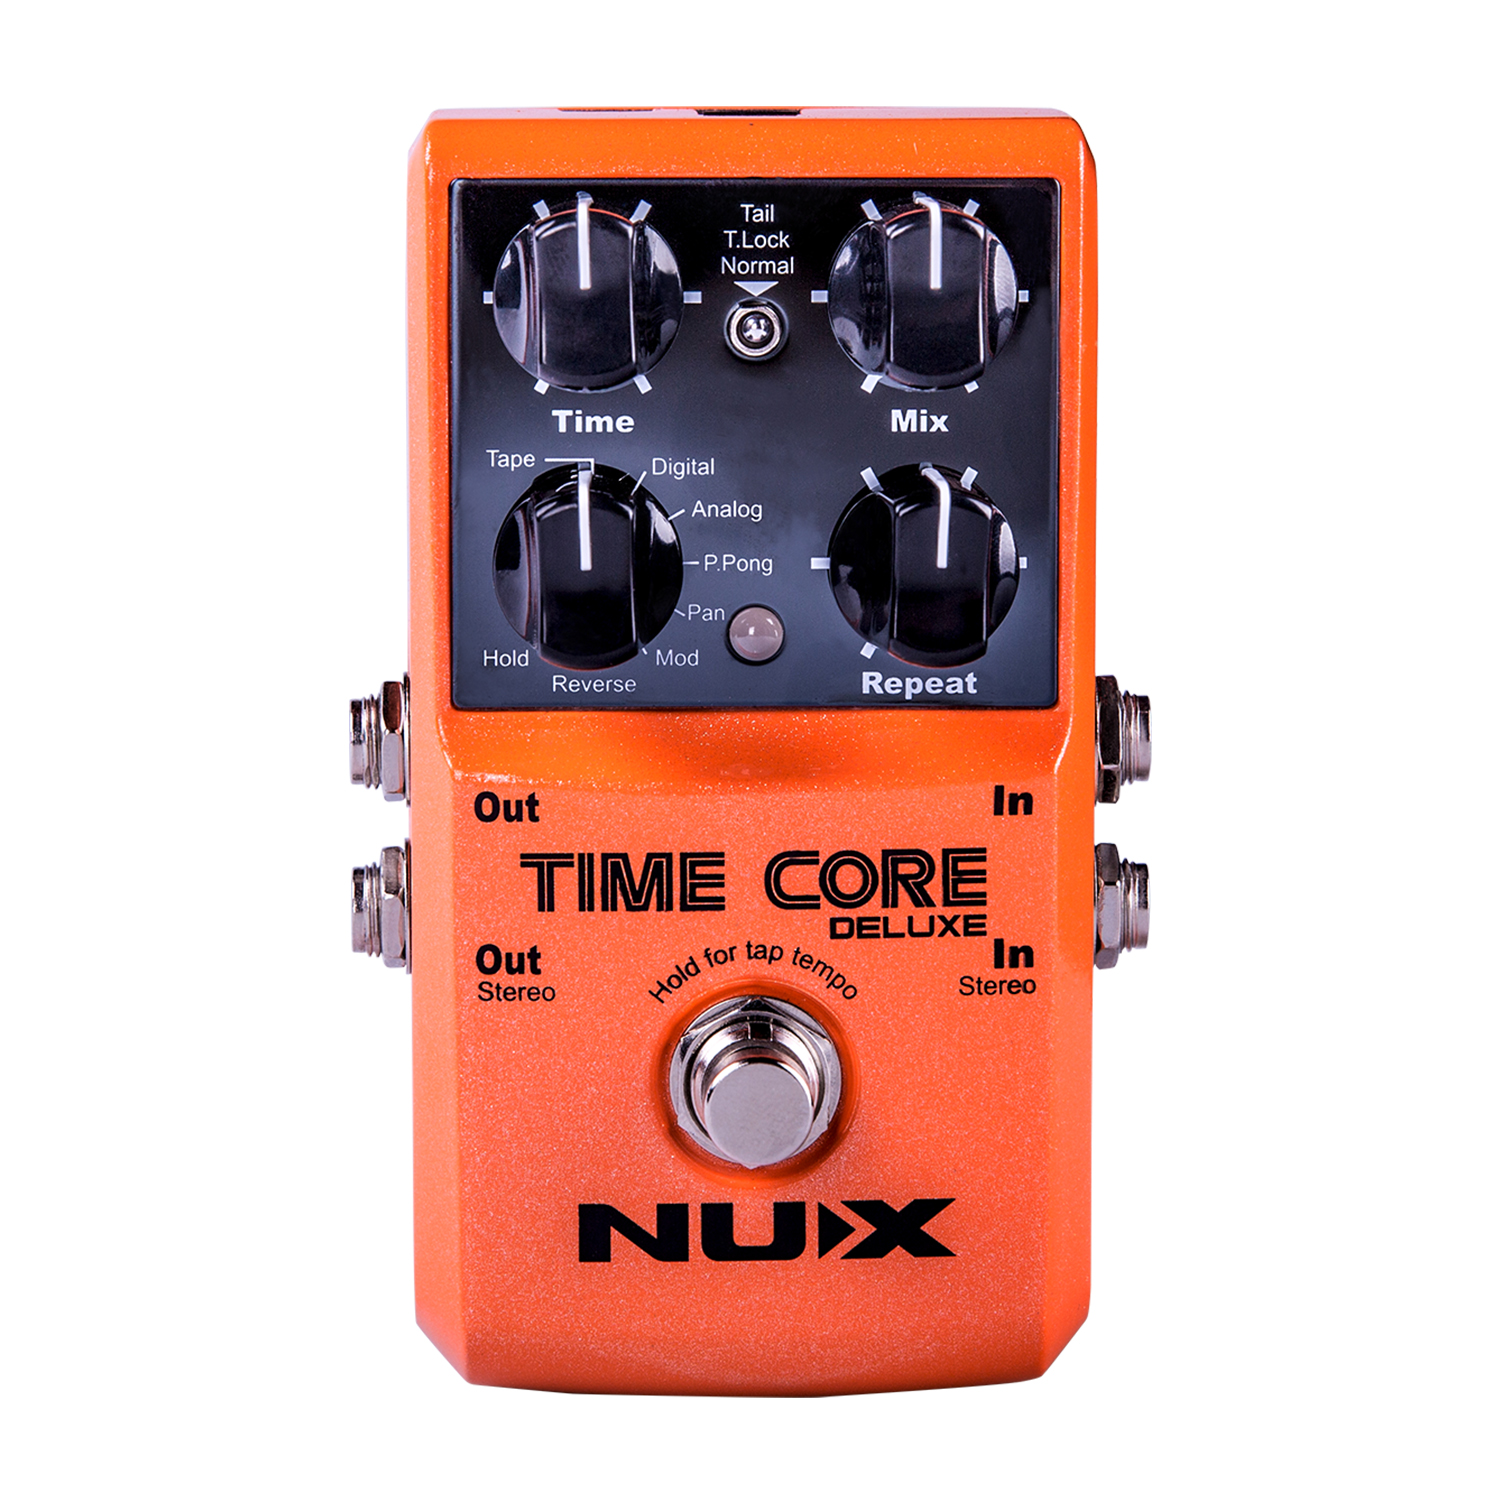 NUX Time Core Deluxe Delay Guitar Effect Pedal Incredible Ambient Crystal Clear True Bypass Tone Lock TSAC Technology nux time core deluxe delay pedal different types of delays to the upmost ambience